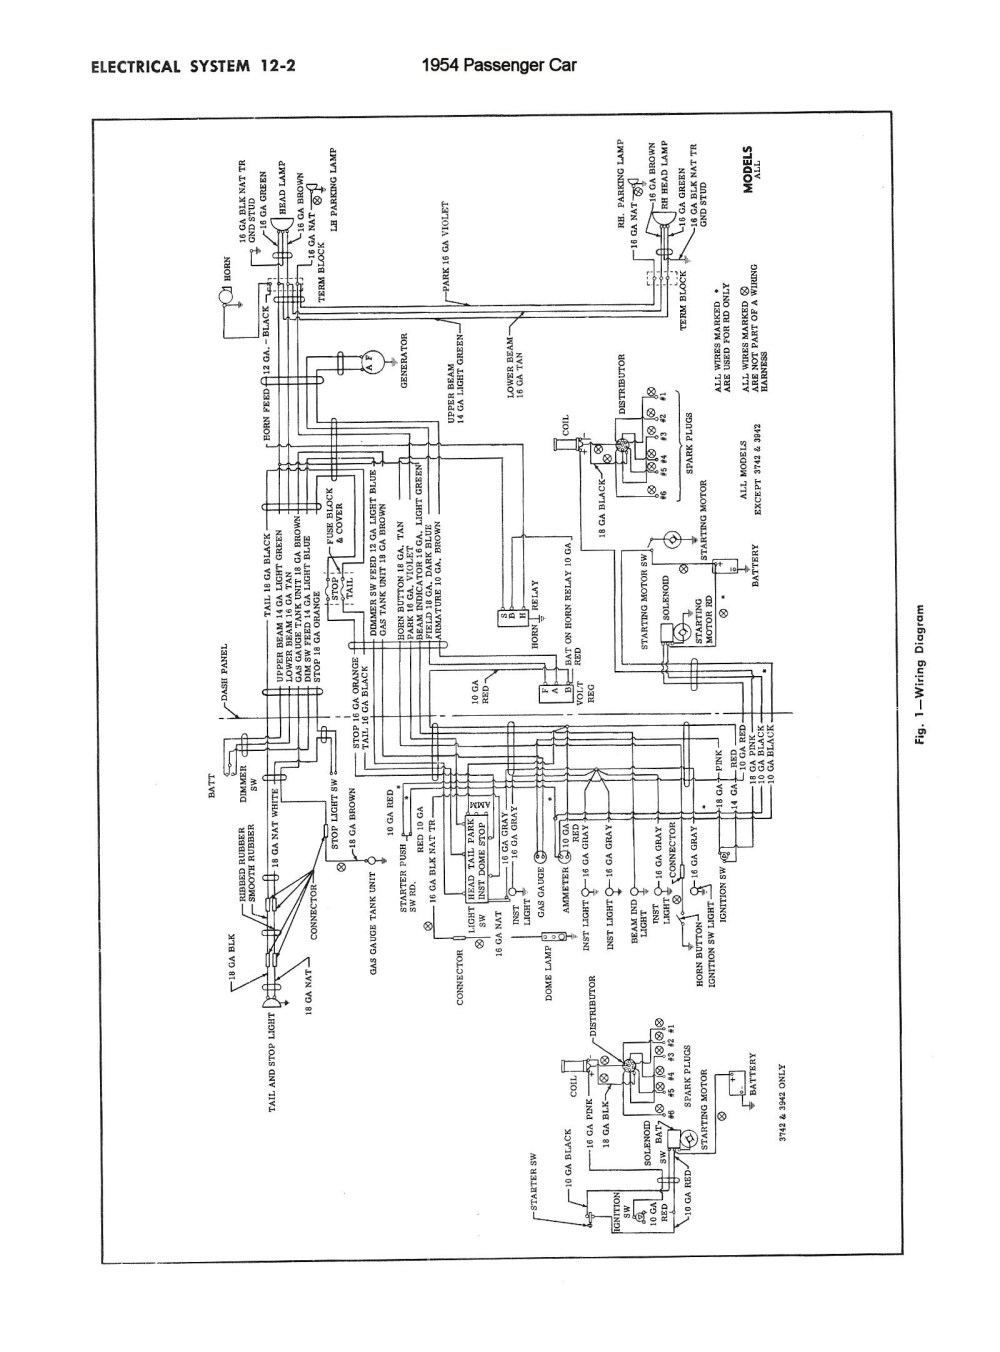 medium resolution of 1946 gauge wiring diagram wiring diagram 1946 gauge wiring diagram